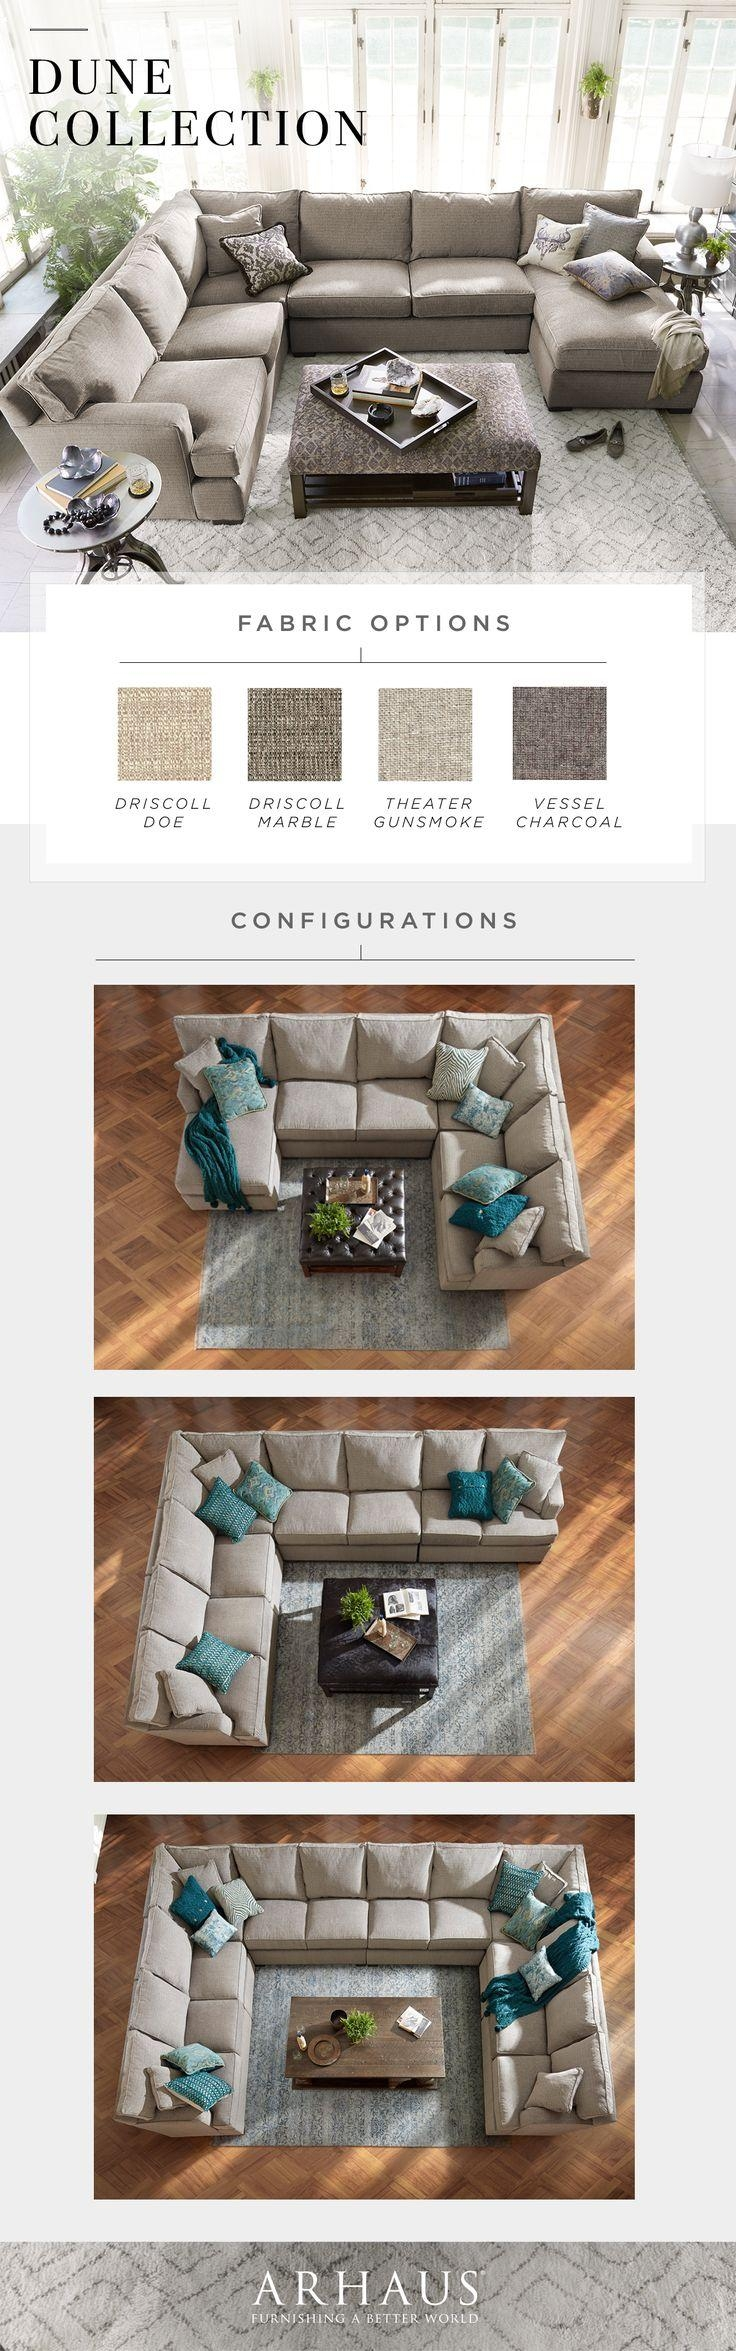 14 Best Sectional Sofas Images On Pinterest | Living Room For Arhaus Emory Sectional (View 15 of 15)